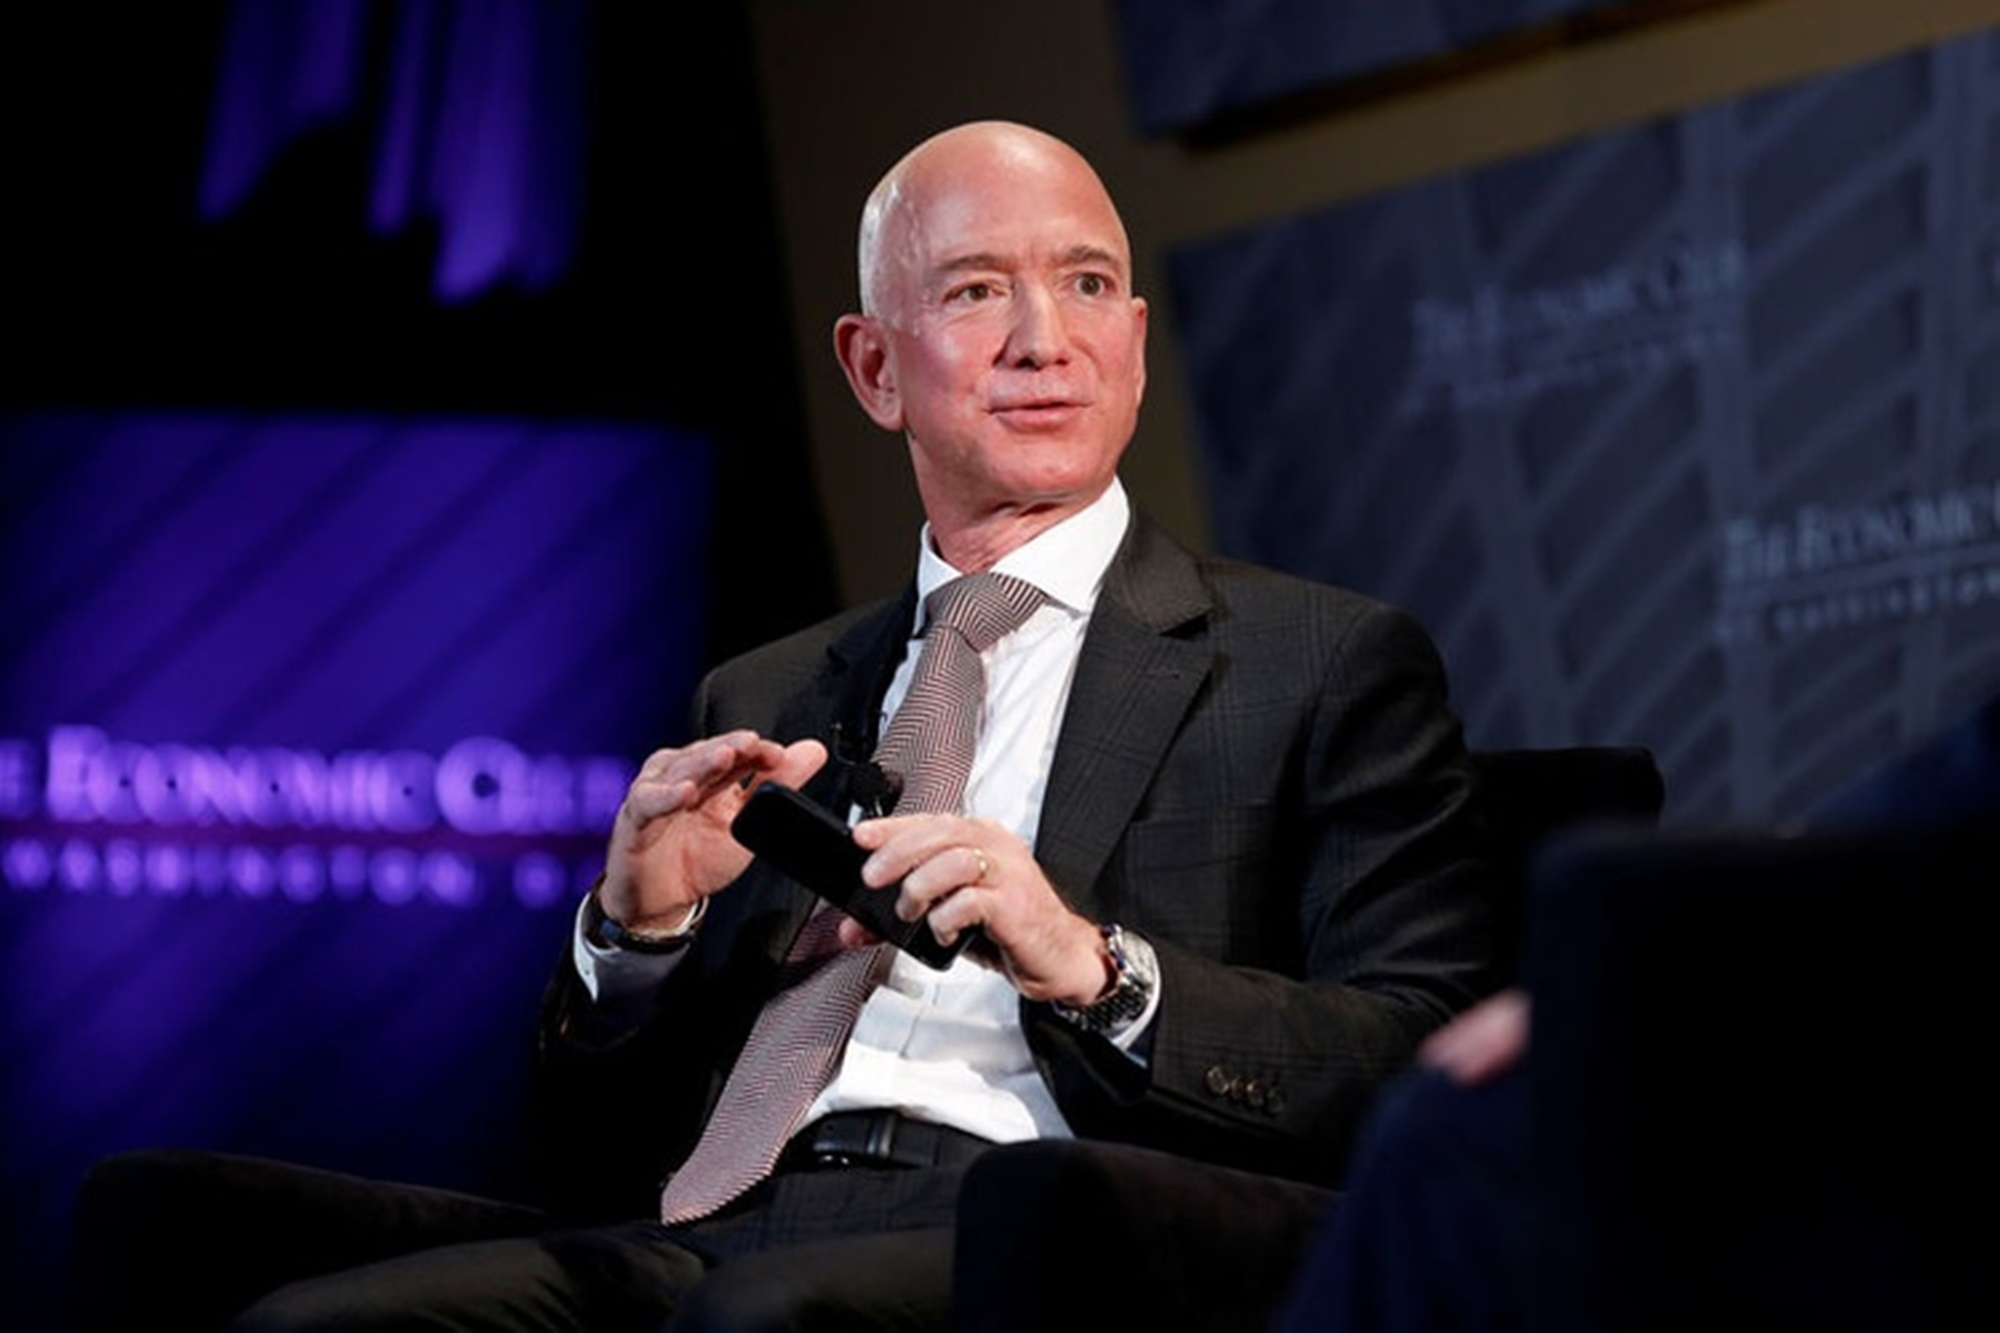 """jeff-bezos-could-have-been-compromised-by-saudi-arabia-through-his-phone"""